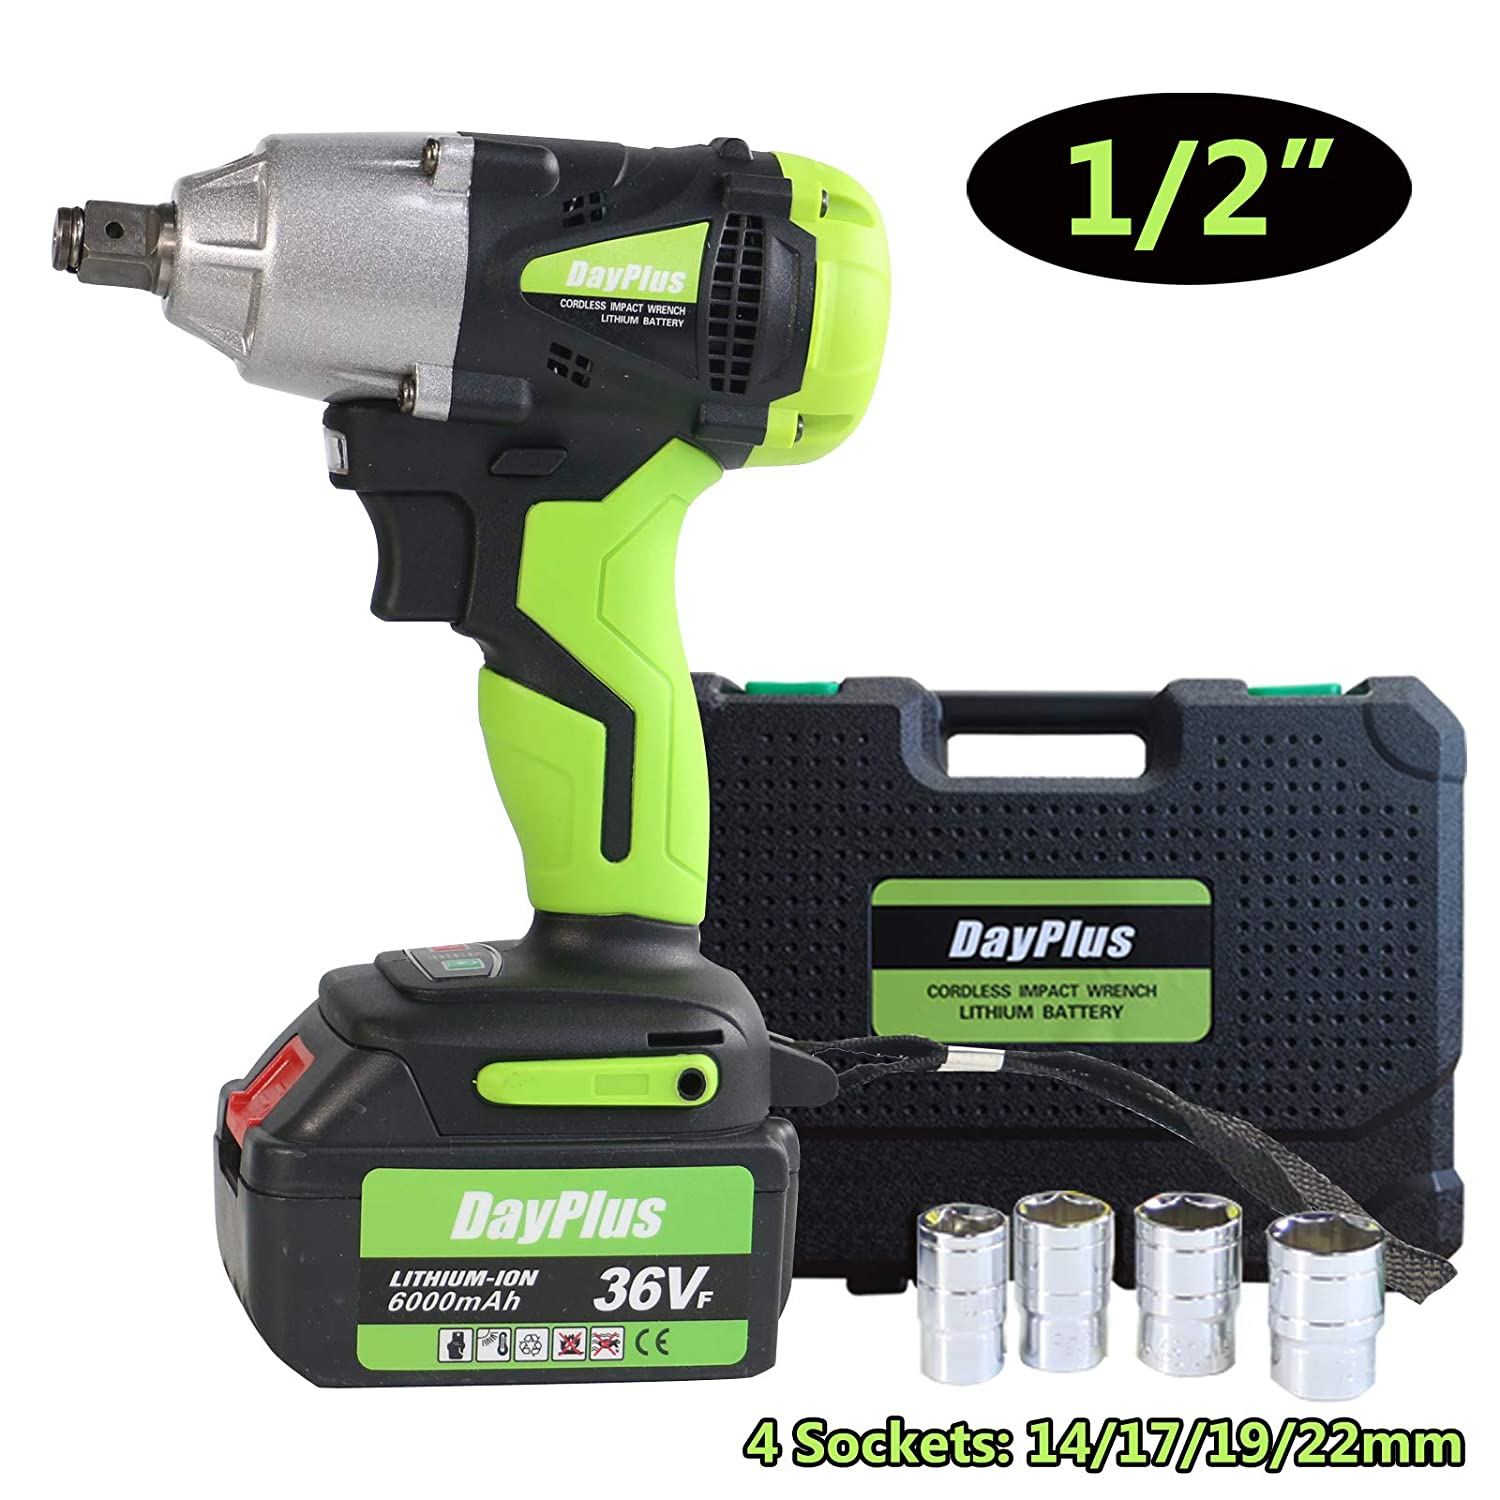 Cordless Impact Wrench 1//2 inch Drive 18V High Torque 460Nm with Socket Set 14mm 17mm 19mm 22mm with Two Batteries 6000mAh Li-Ion 3200rpm Variable Speed with Carry Box